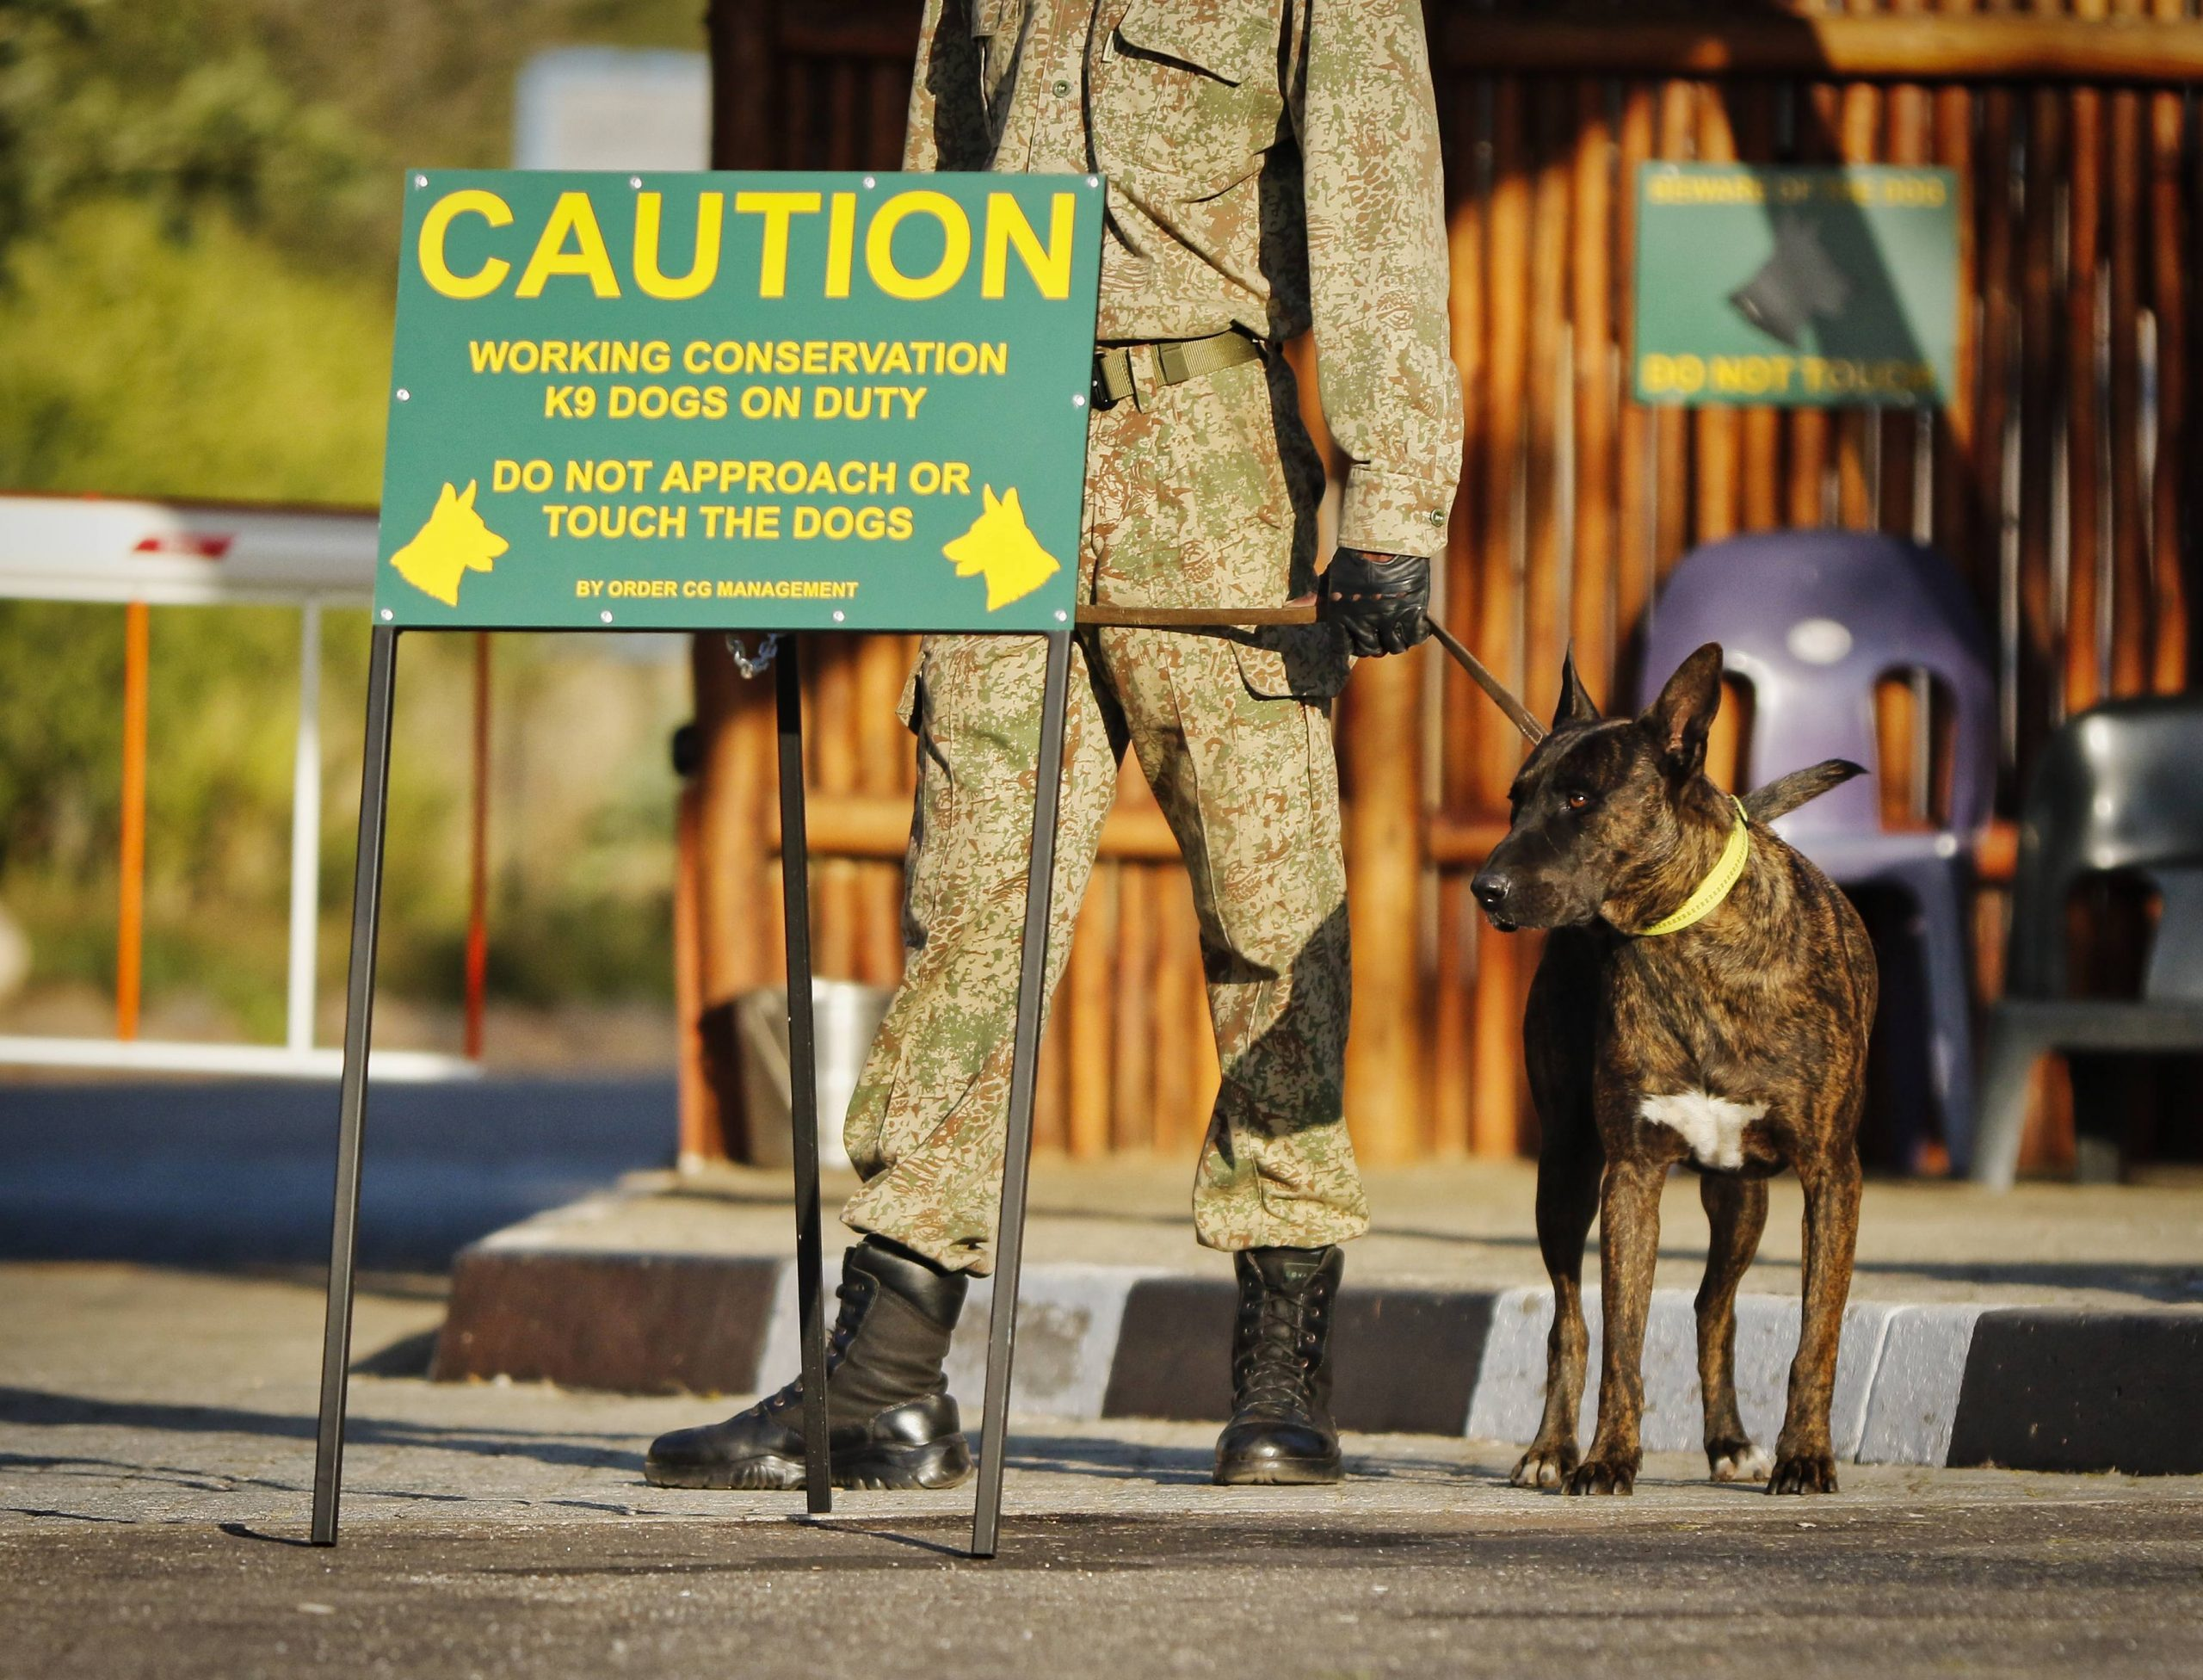 antipoaching k9 dog ranger pit-track rhino conservation south africa